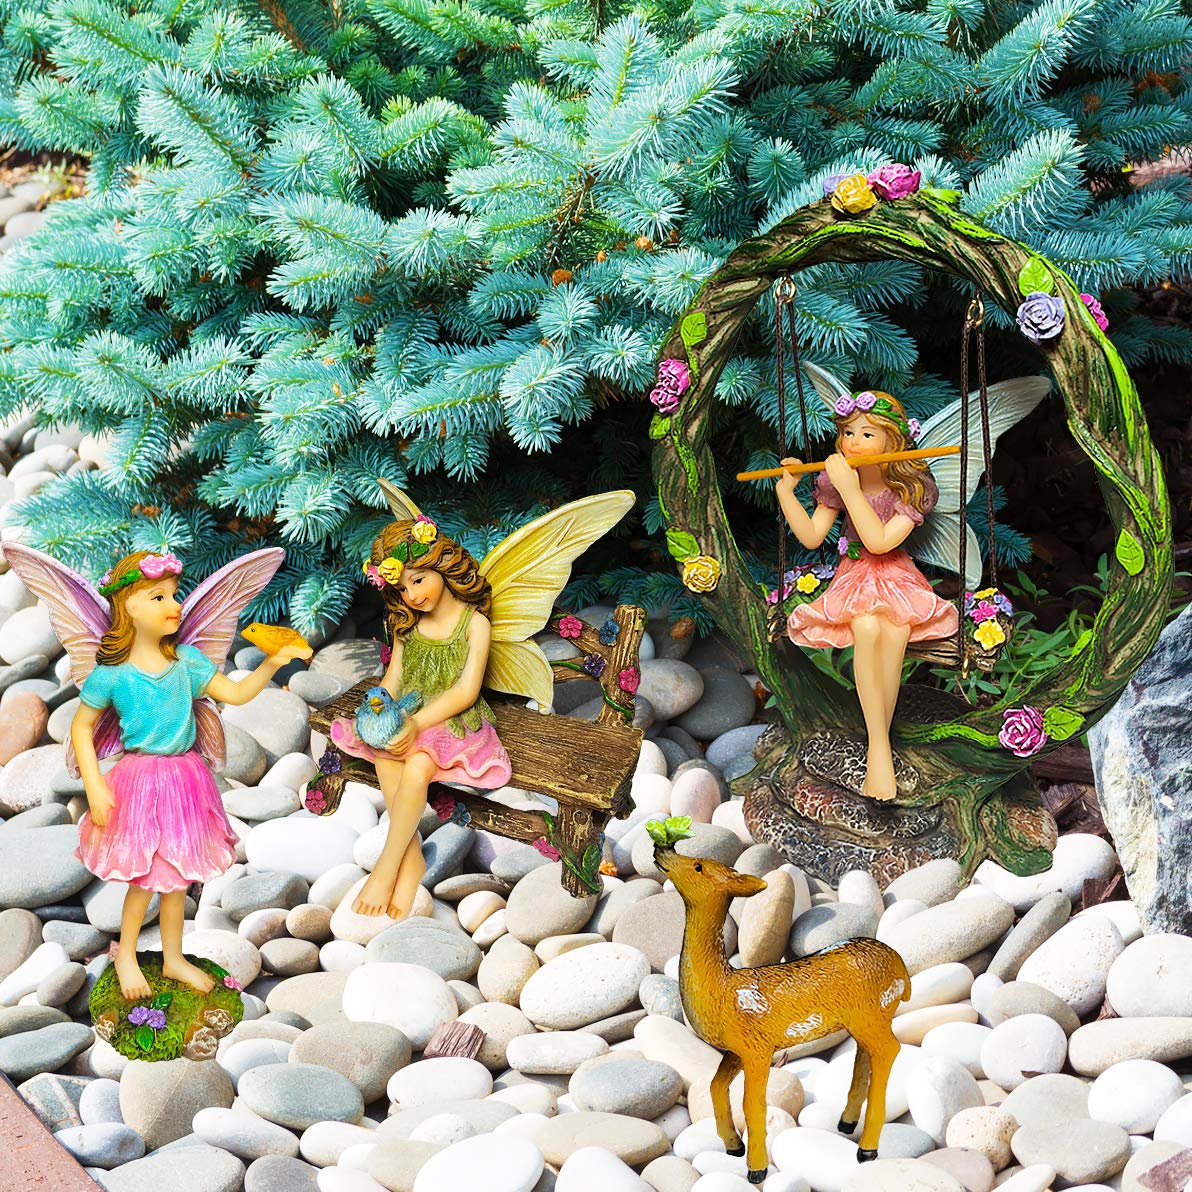 Mood Lab Fairy Garden Kit - Miniature Figurines with Accessories Swing Set of 6 pcs - Hand Painted for Outdoor or House Decor by Mood Lab (Image #7)